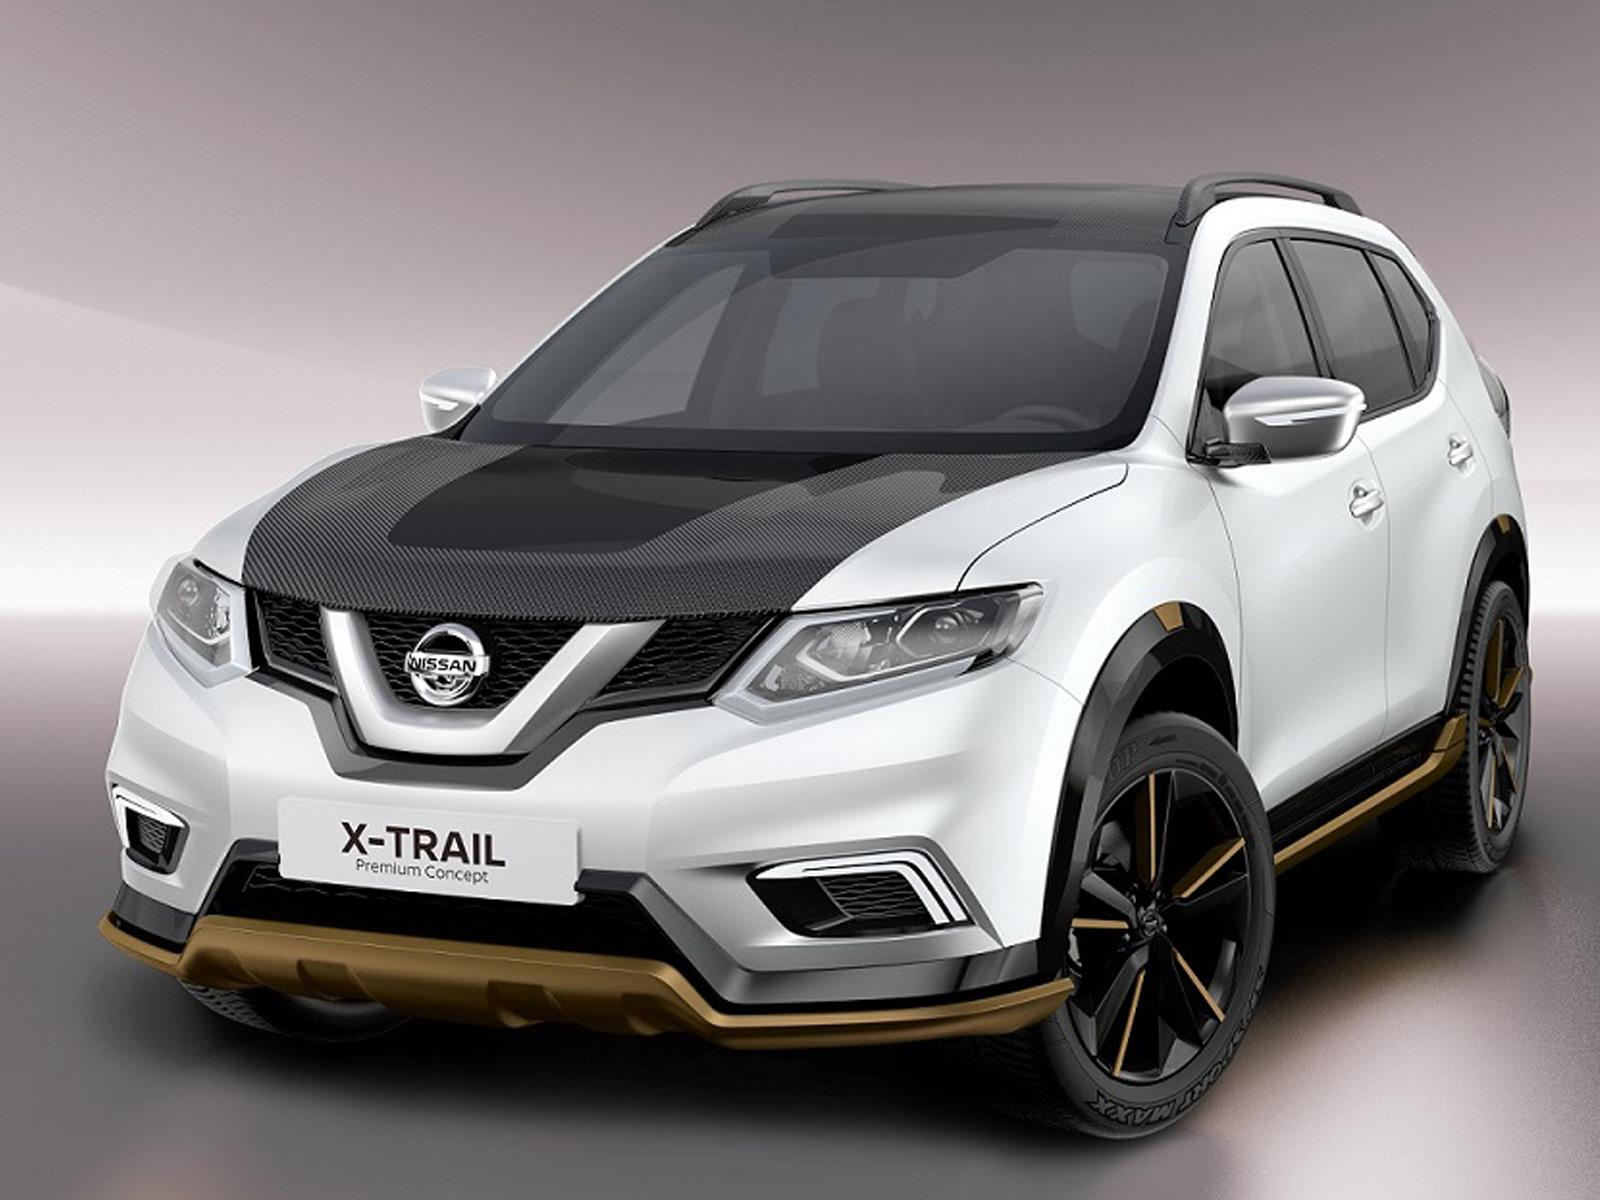 autoshow de ginebra 2016 nissan x trail premium concept. Black Bedroom Furniture Sets. Home Design Ideas